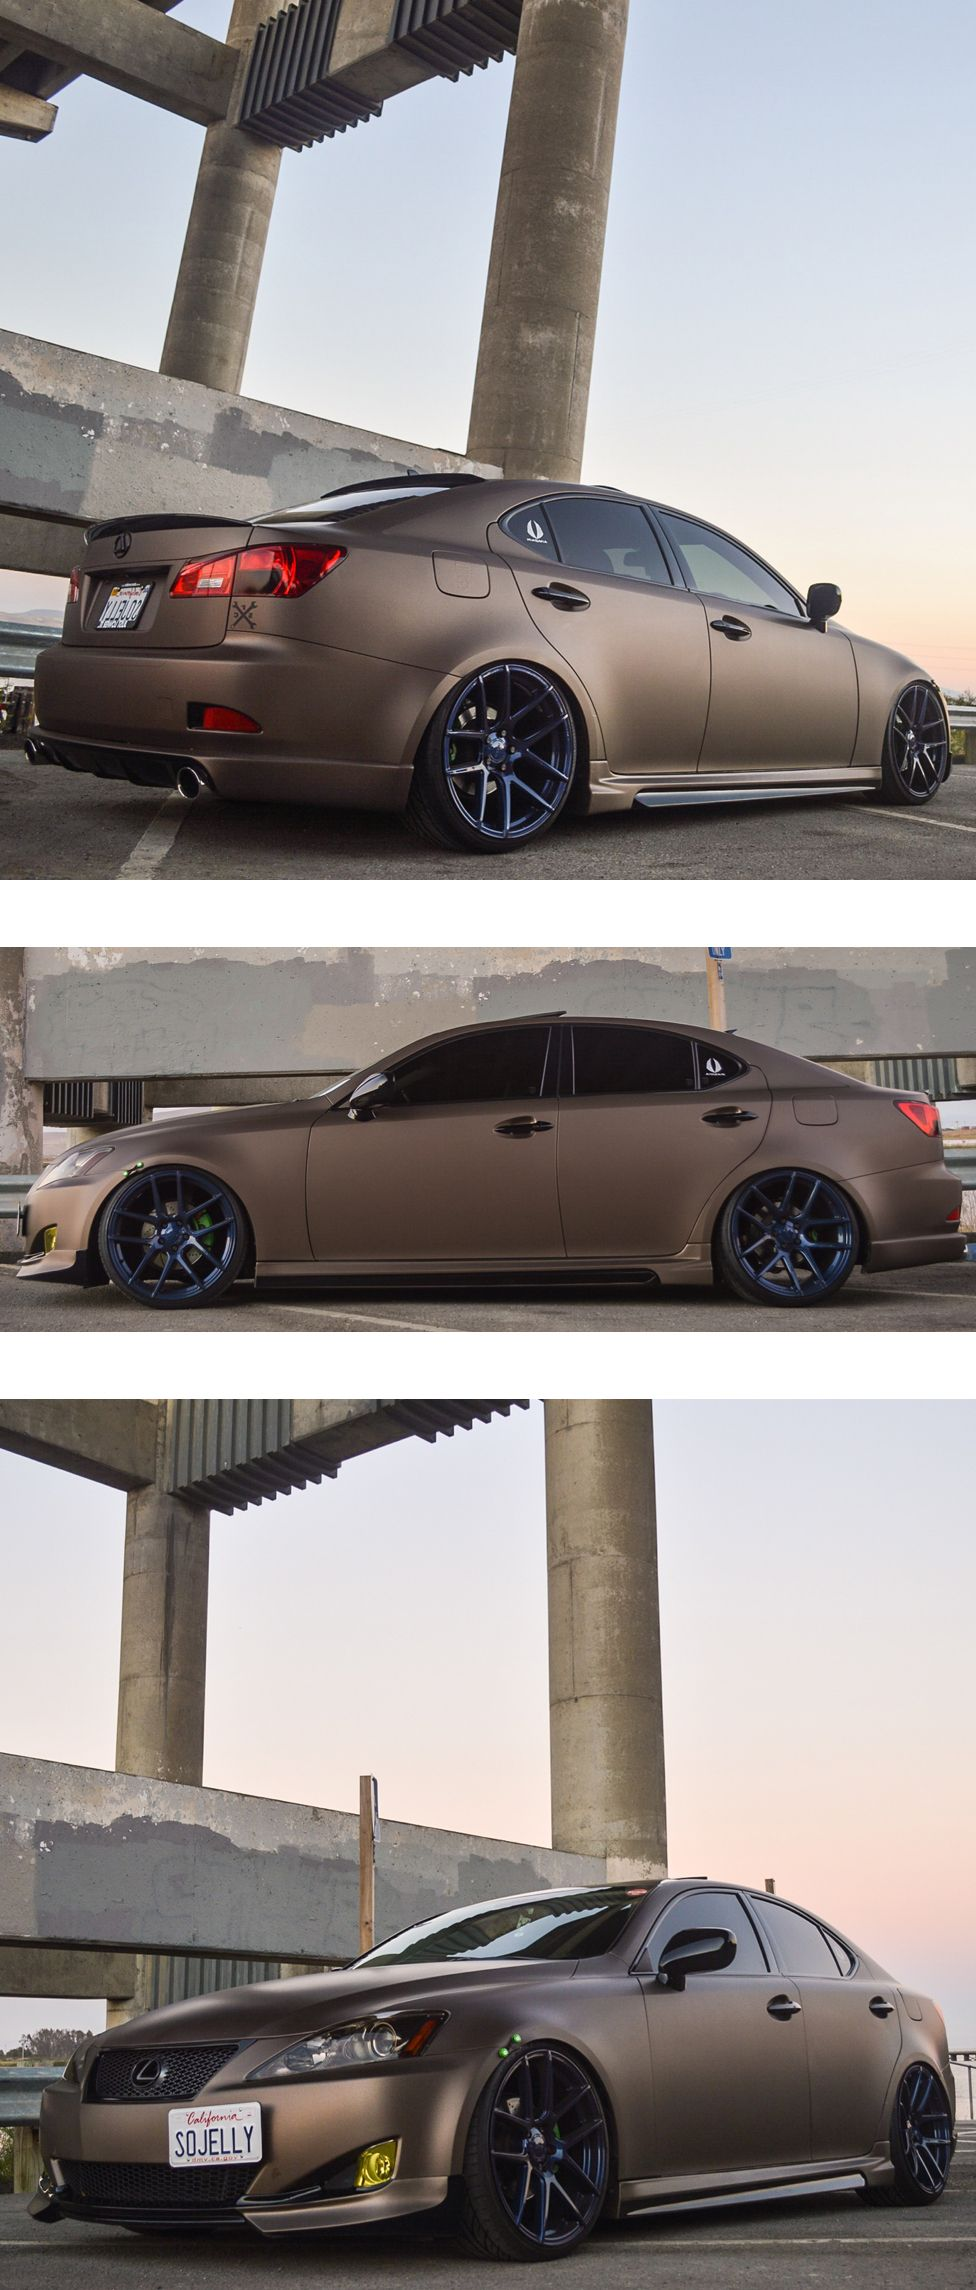 Sick wrap and images of this lexus from speed fiendz for Garage wraps